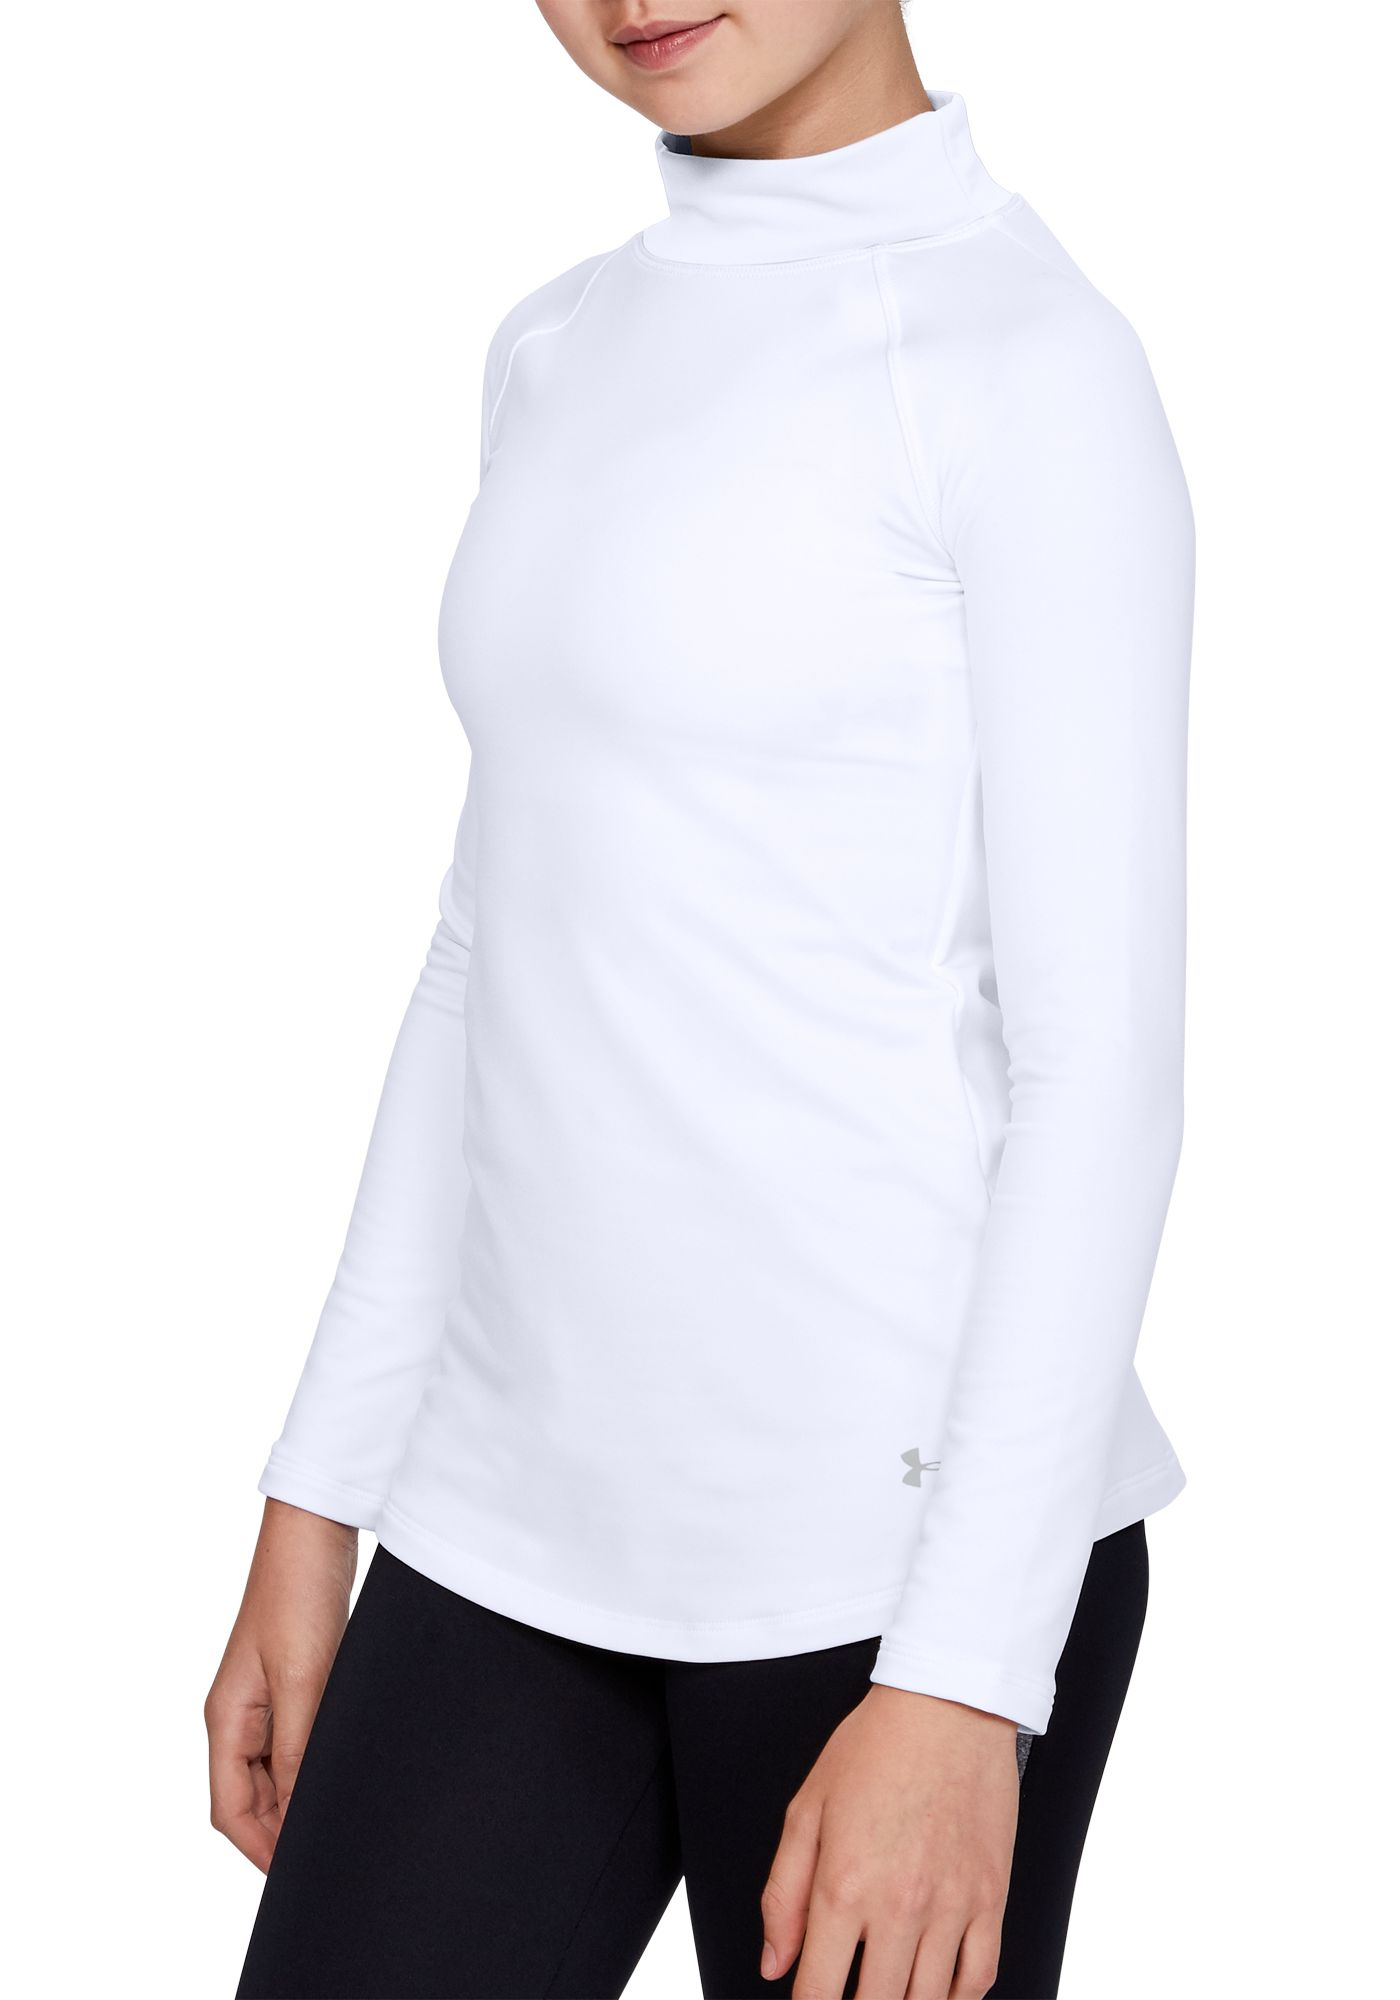 Under Armour Girl's ColdGear Mock Neck Shirt